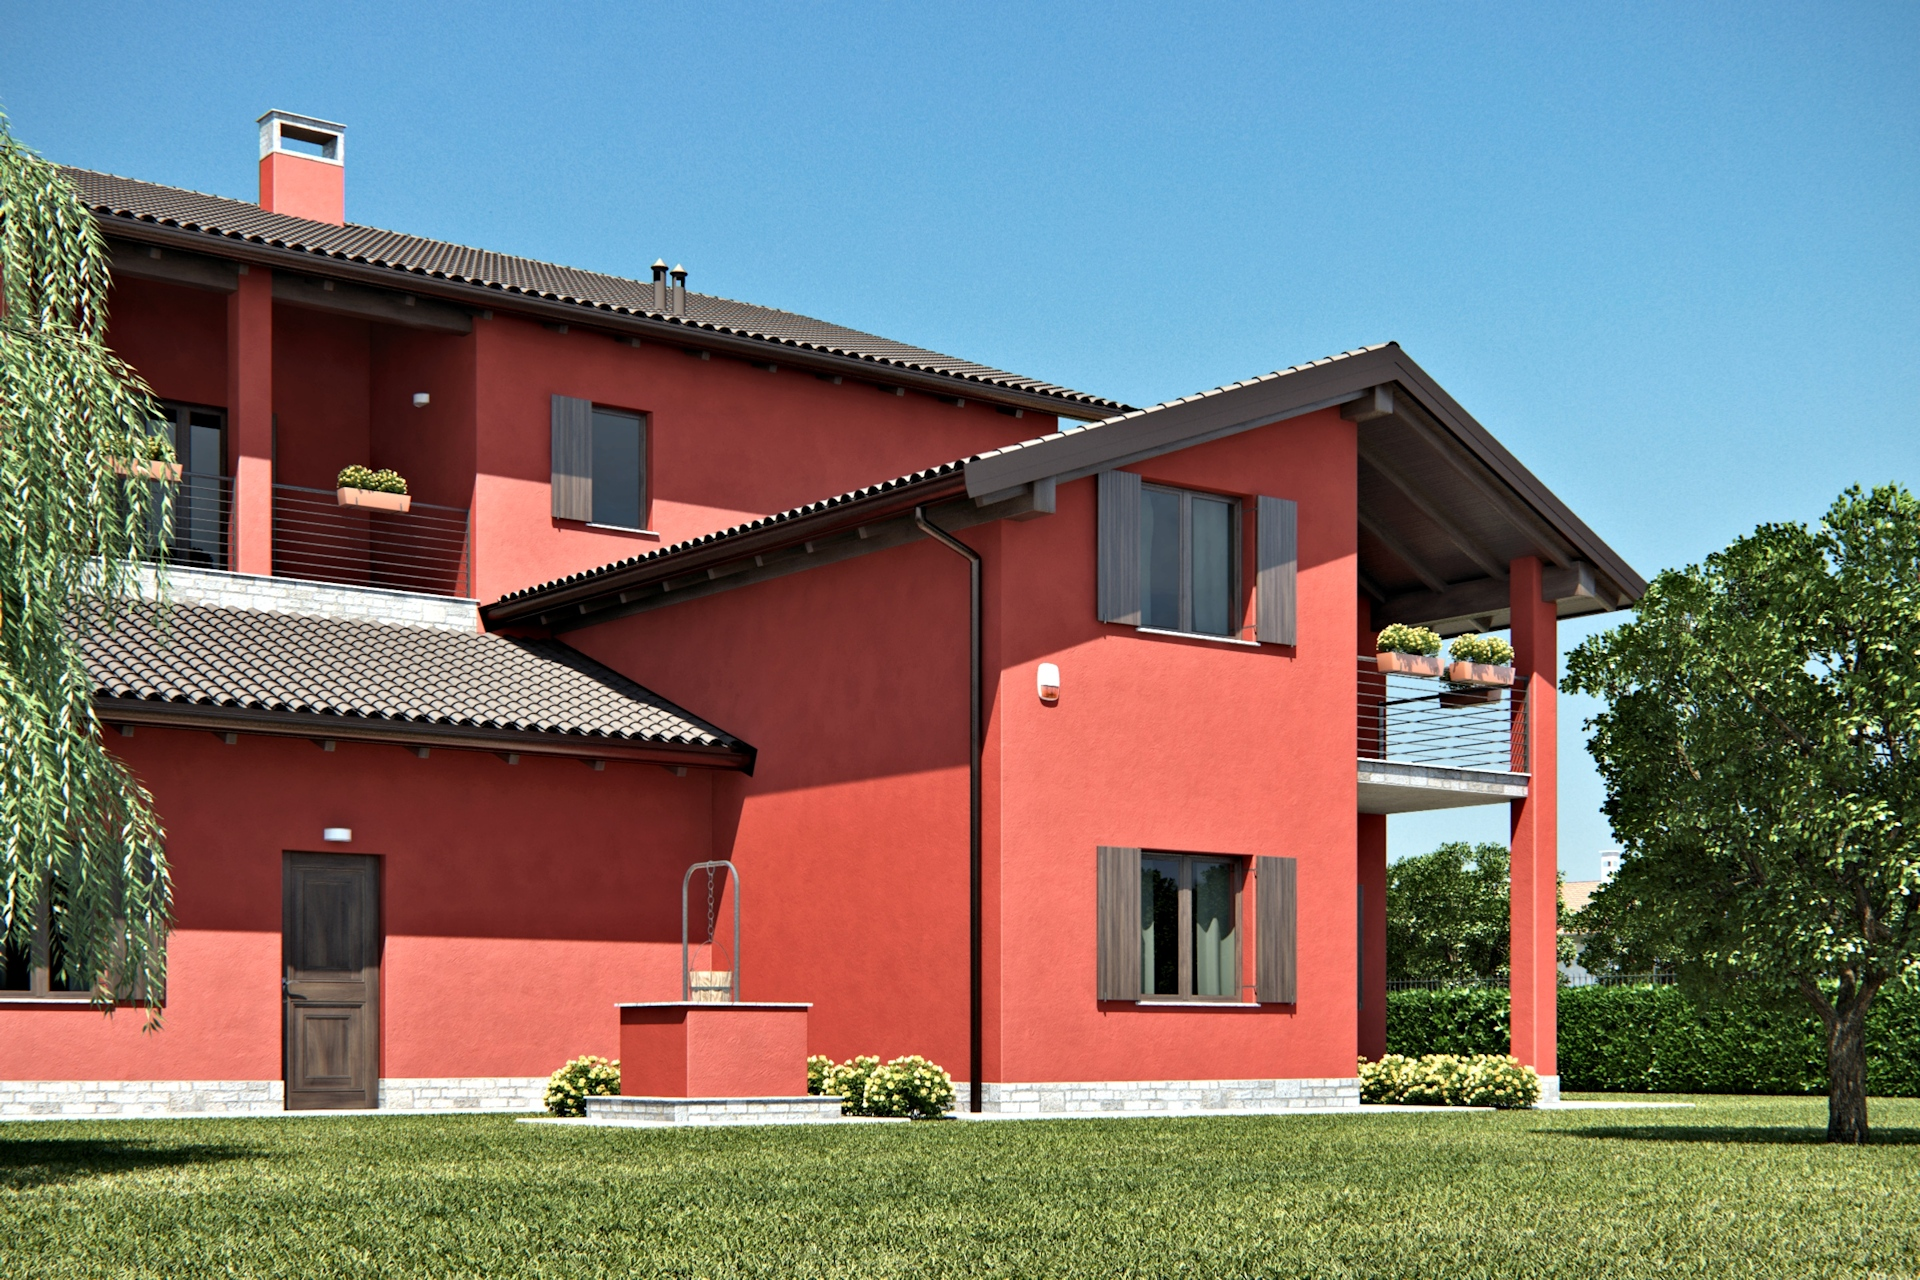 render esterni cascina 3dcomotion